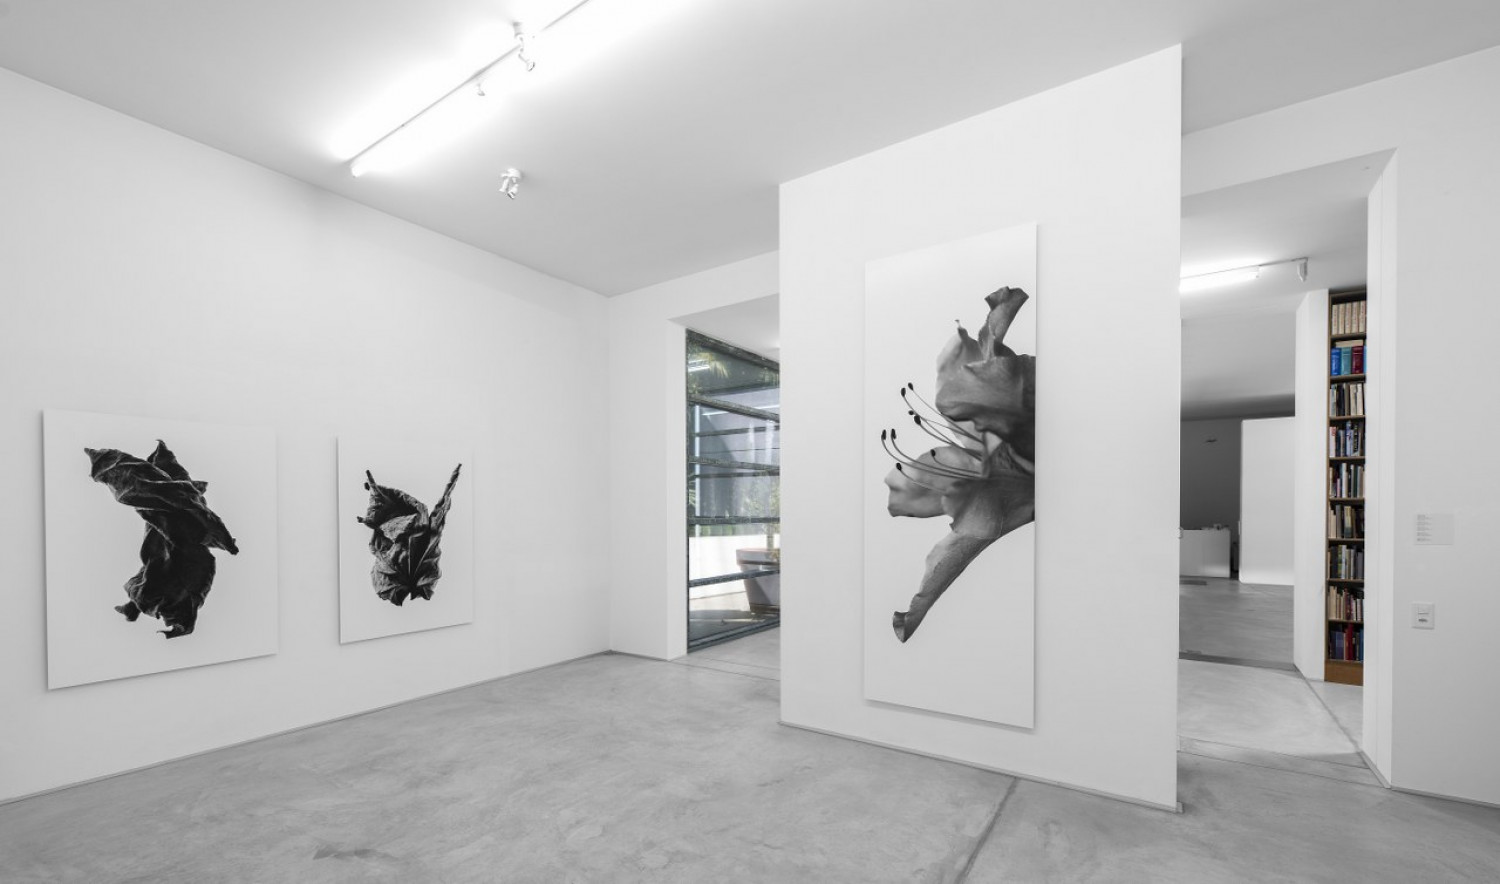 Marco D'Anna, 'Oltre', Installation view, Buchmann Galerie Agra / Lugano, 2016